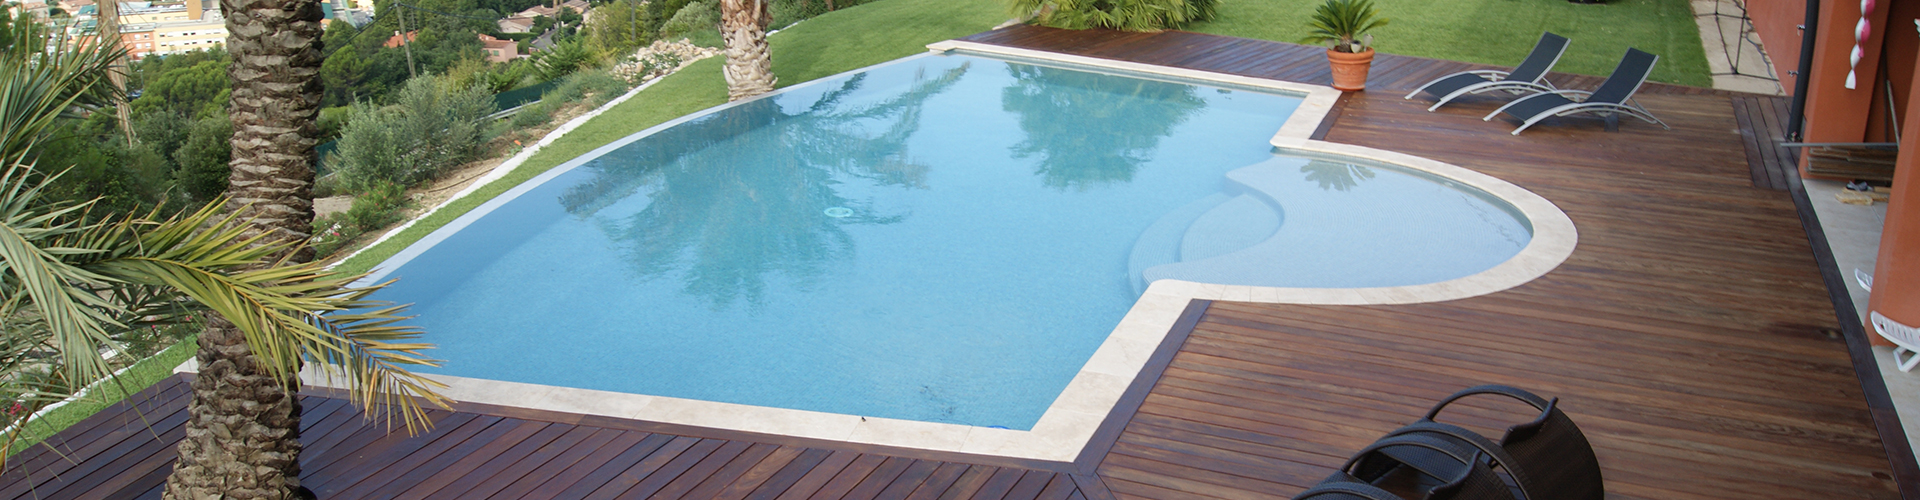 Piscine d bordement sur mesure centerspas for Piscine miroir plan